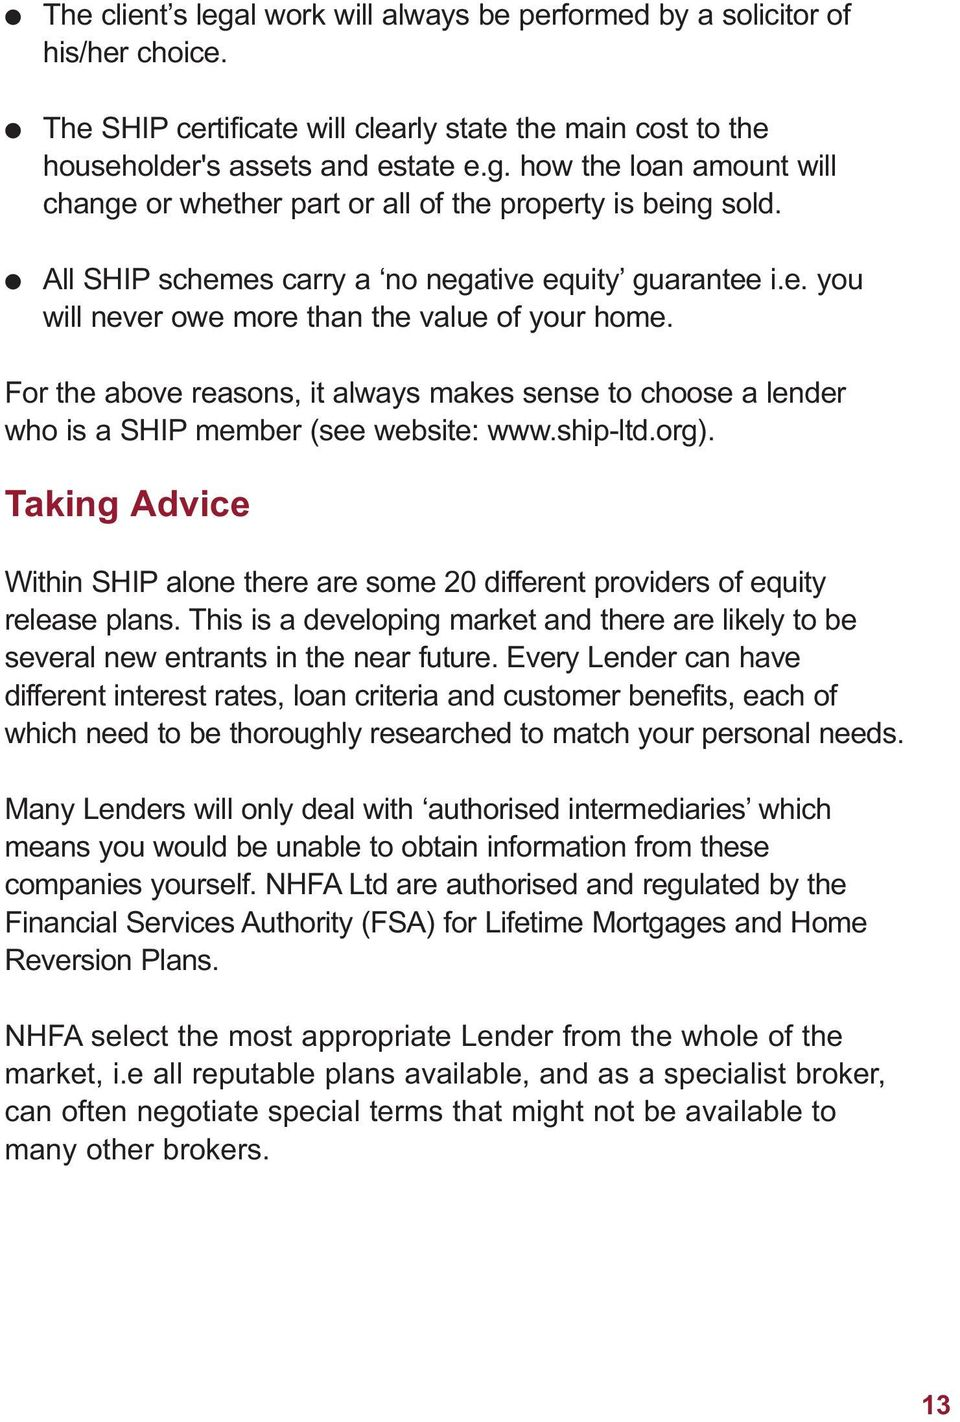 For the above reasons, it always makes sense to choose a lender who is a SHIP member (see website: www.ship-ltd.org).